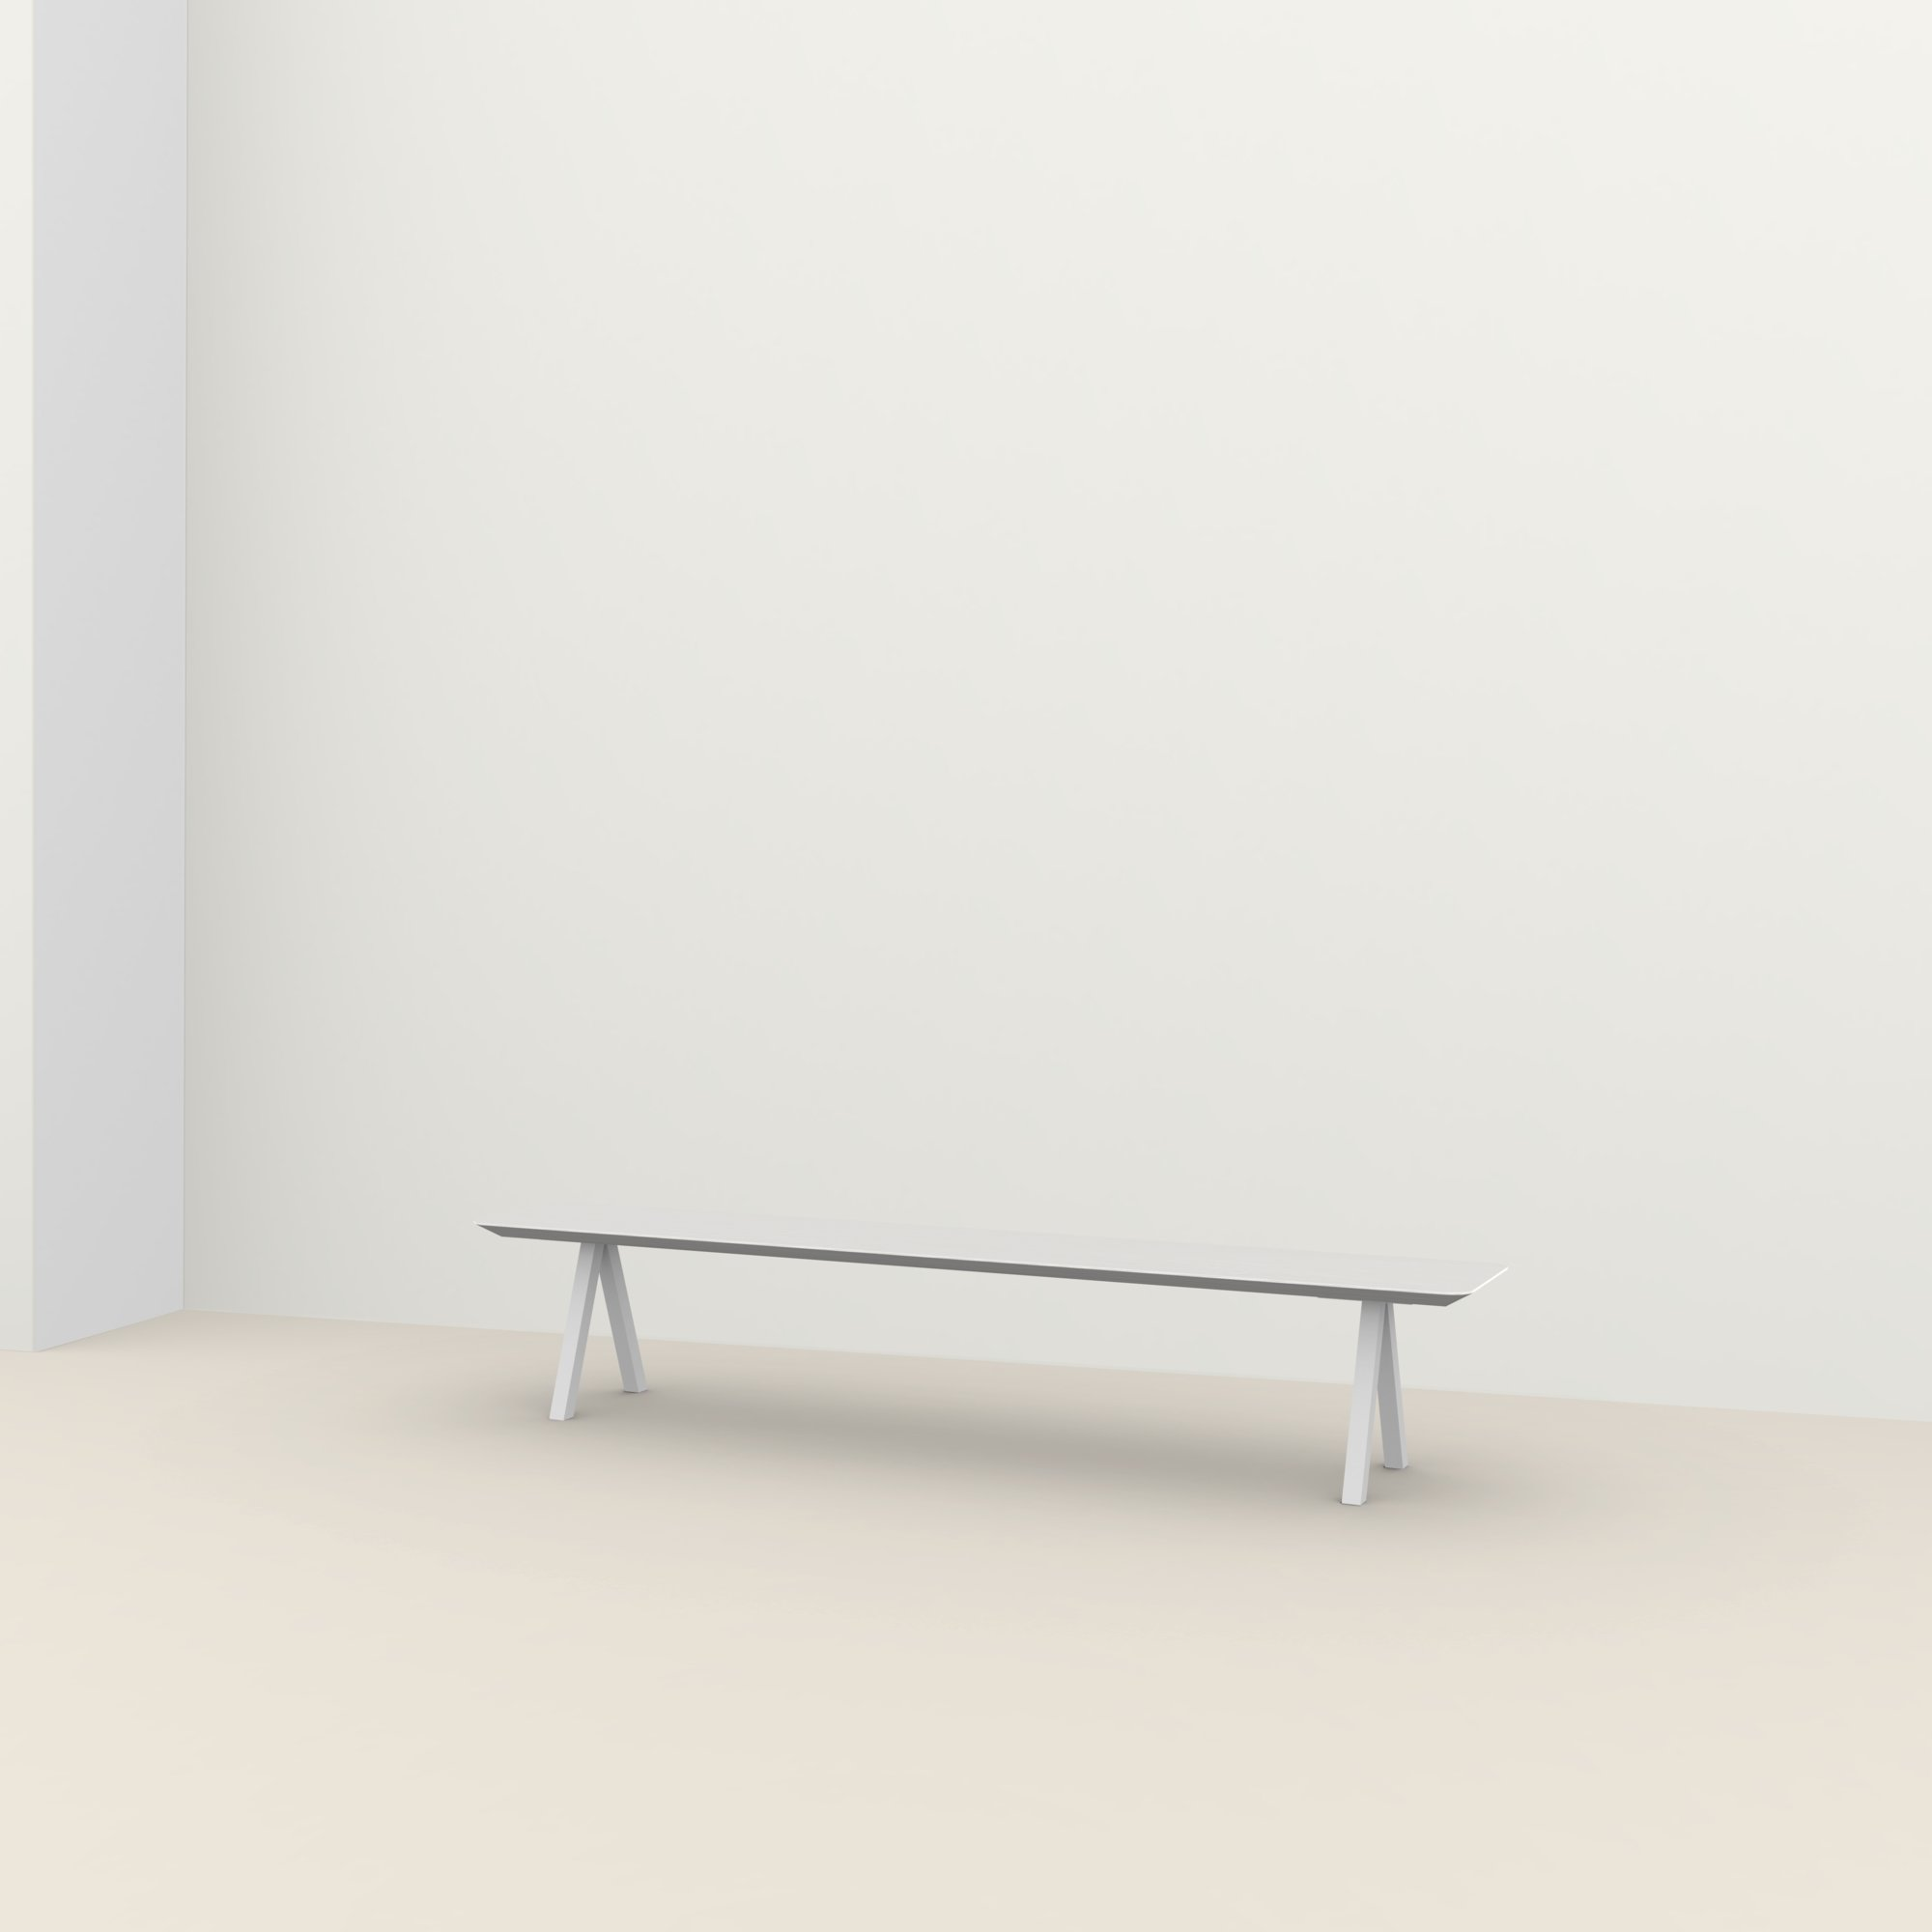 eettafelbank op maat | Slim X-type Bench Steel white powdercoating | Oak white lacquer | Studio HENK |